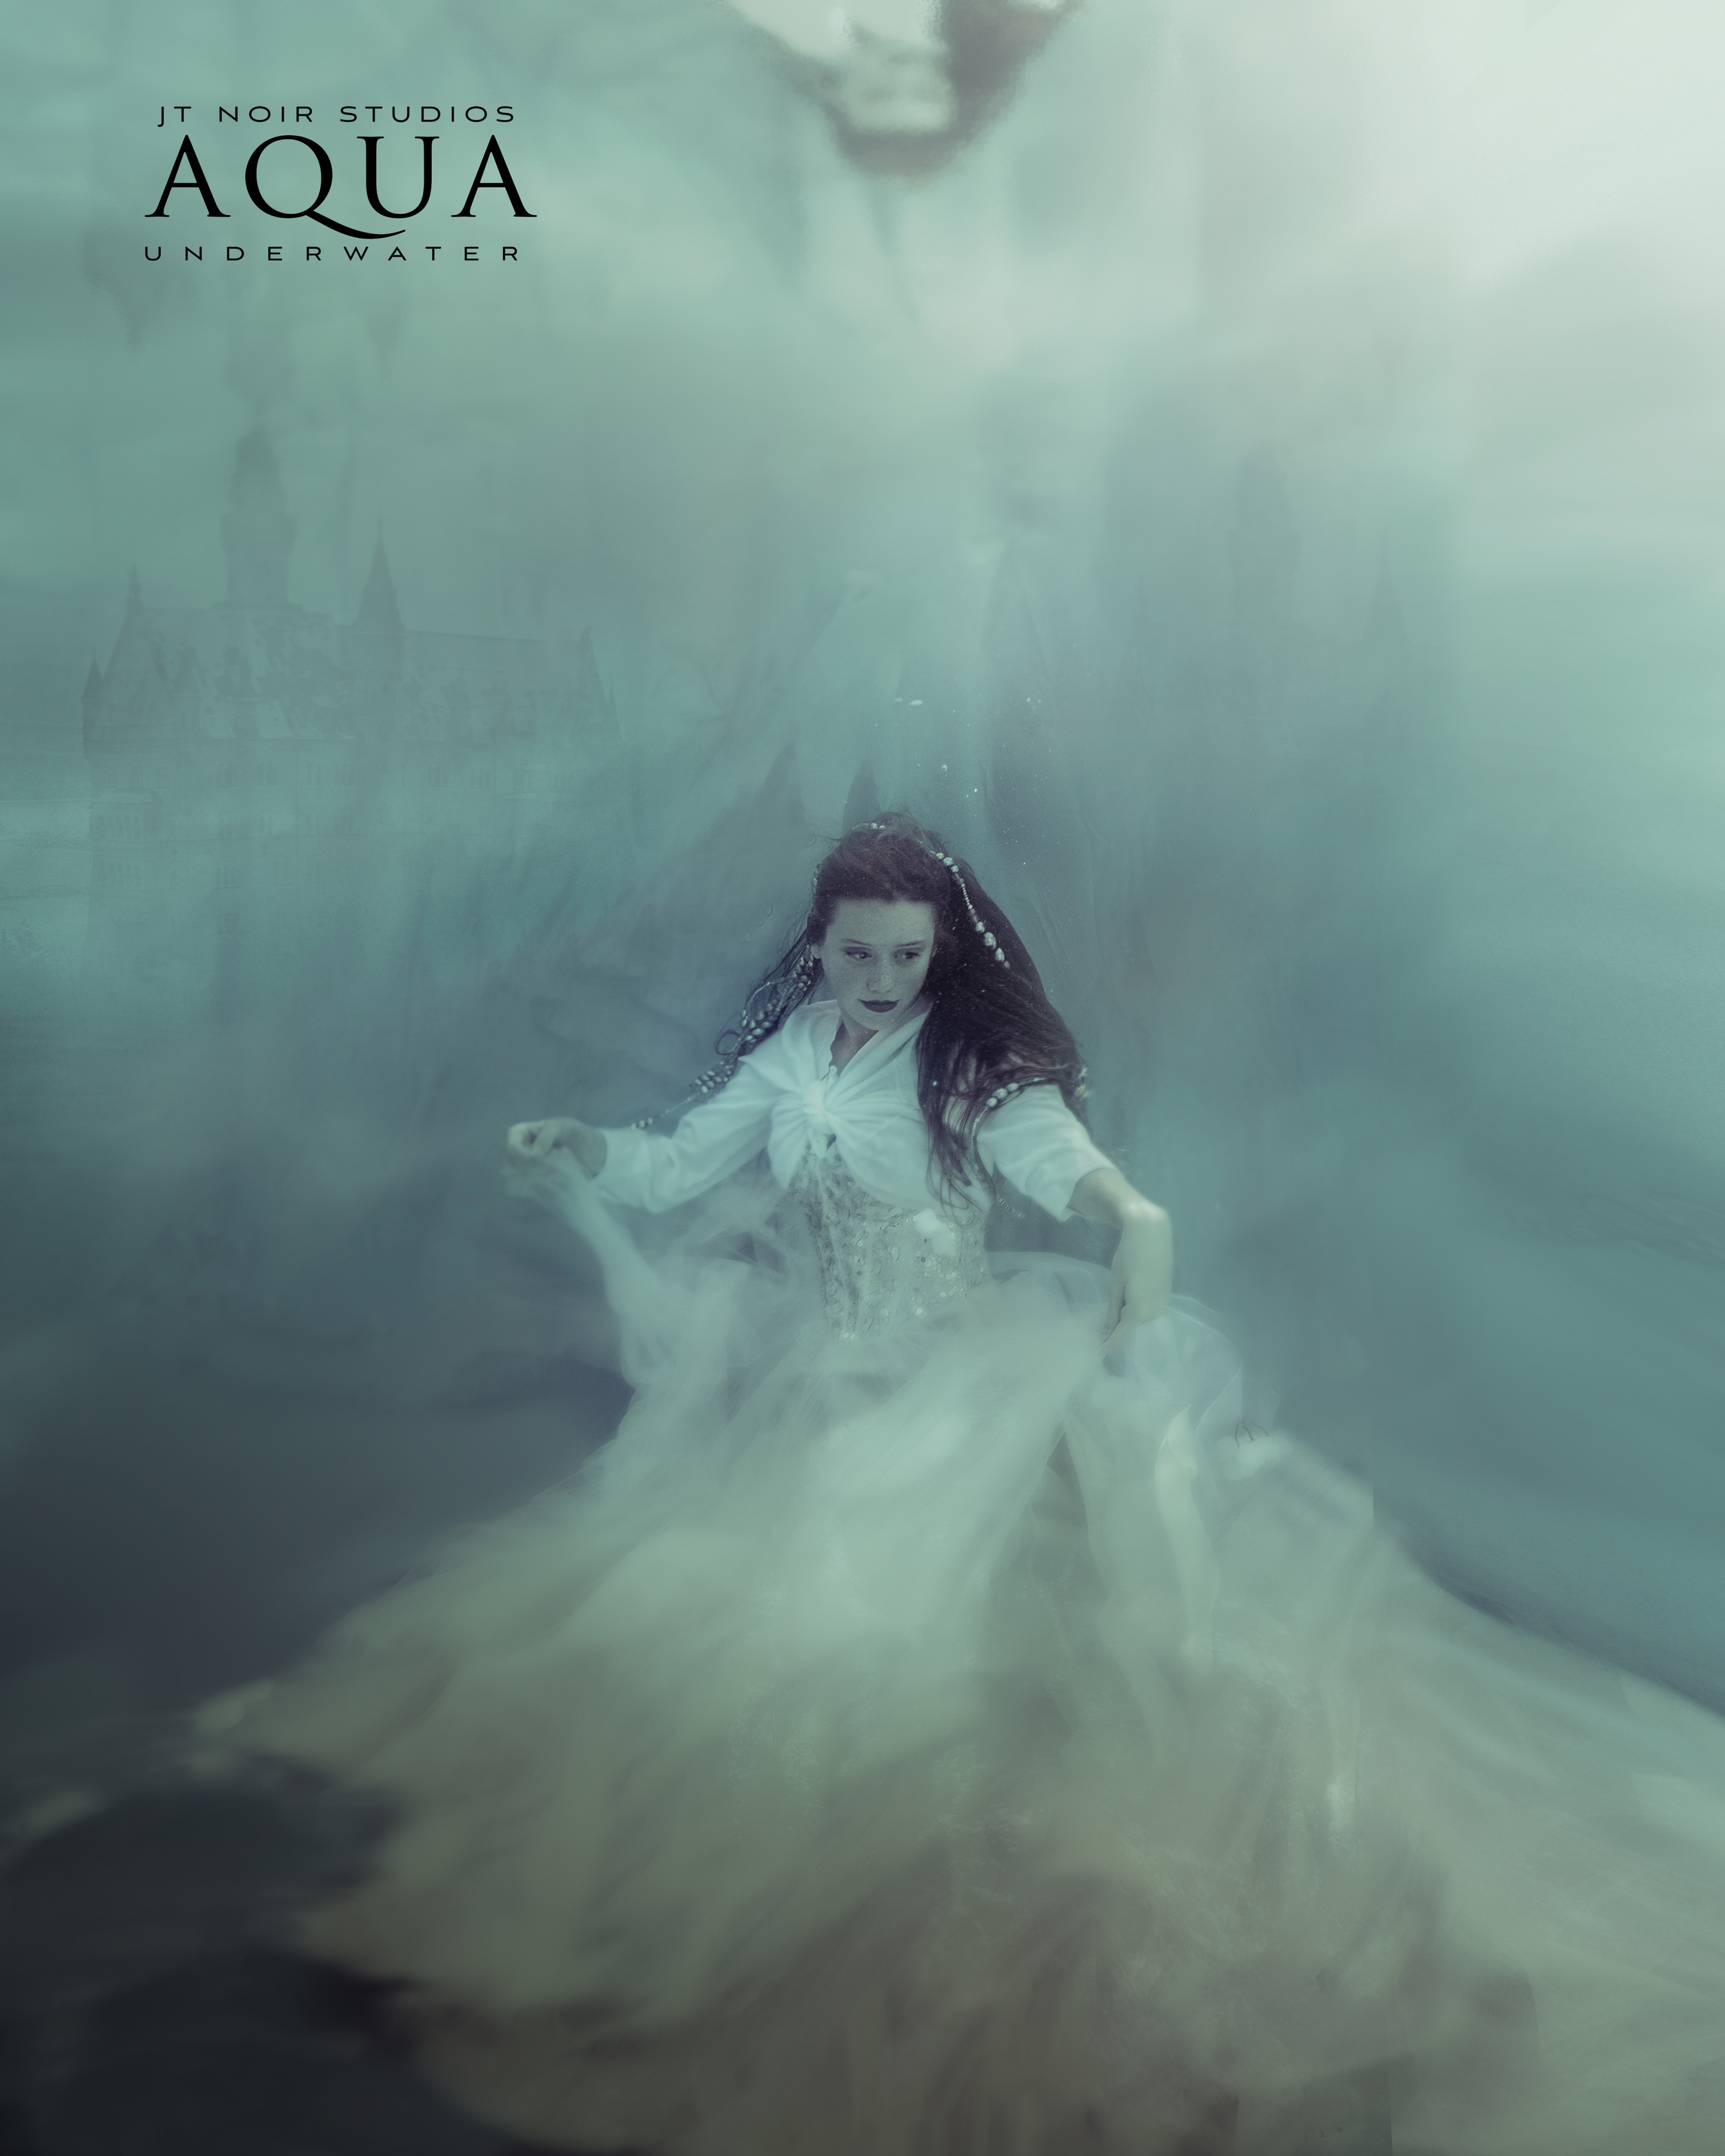 JTAqua_Underwater_IcePrincess_K_Grace_2016-.jpg